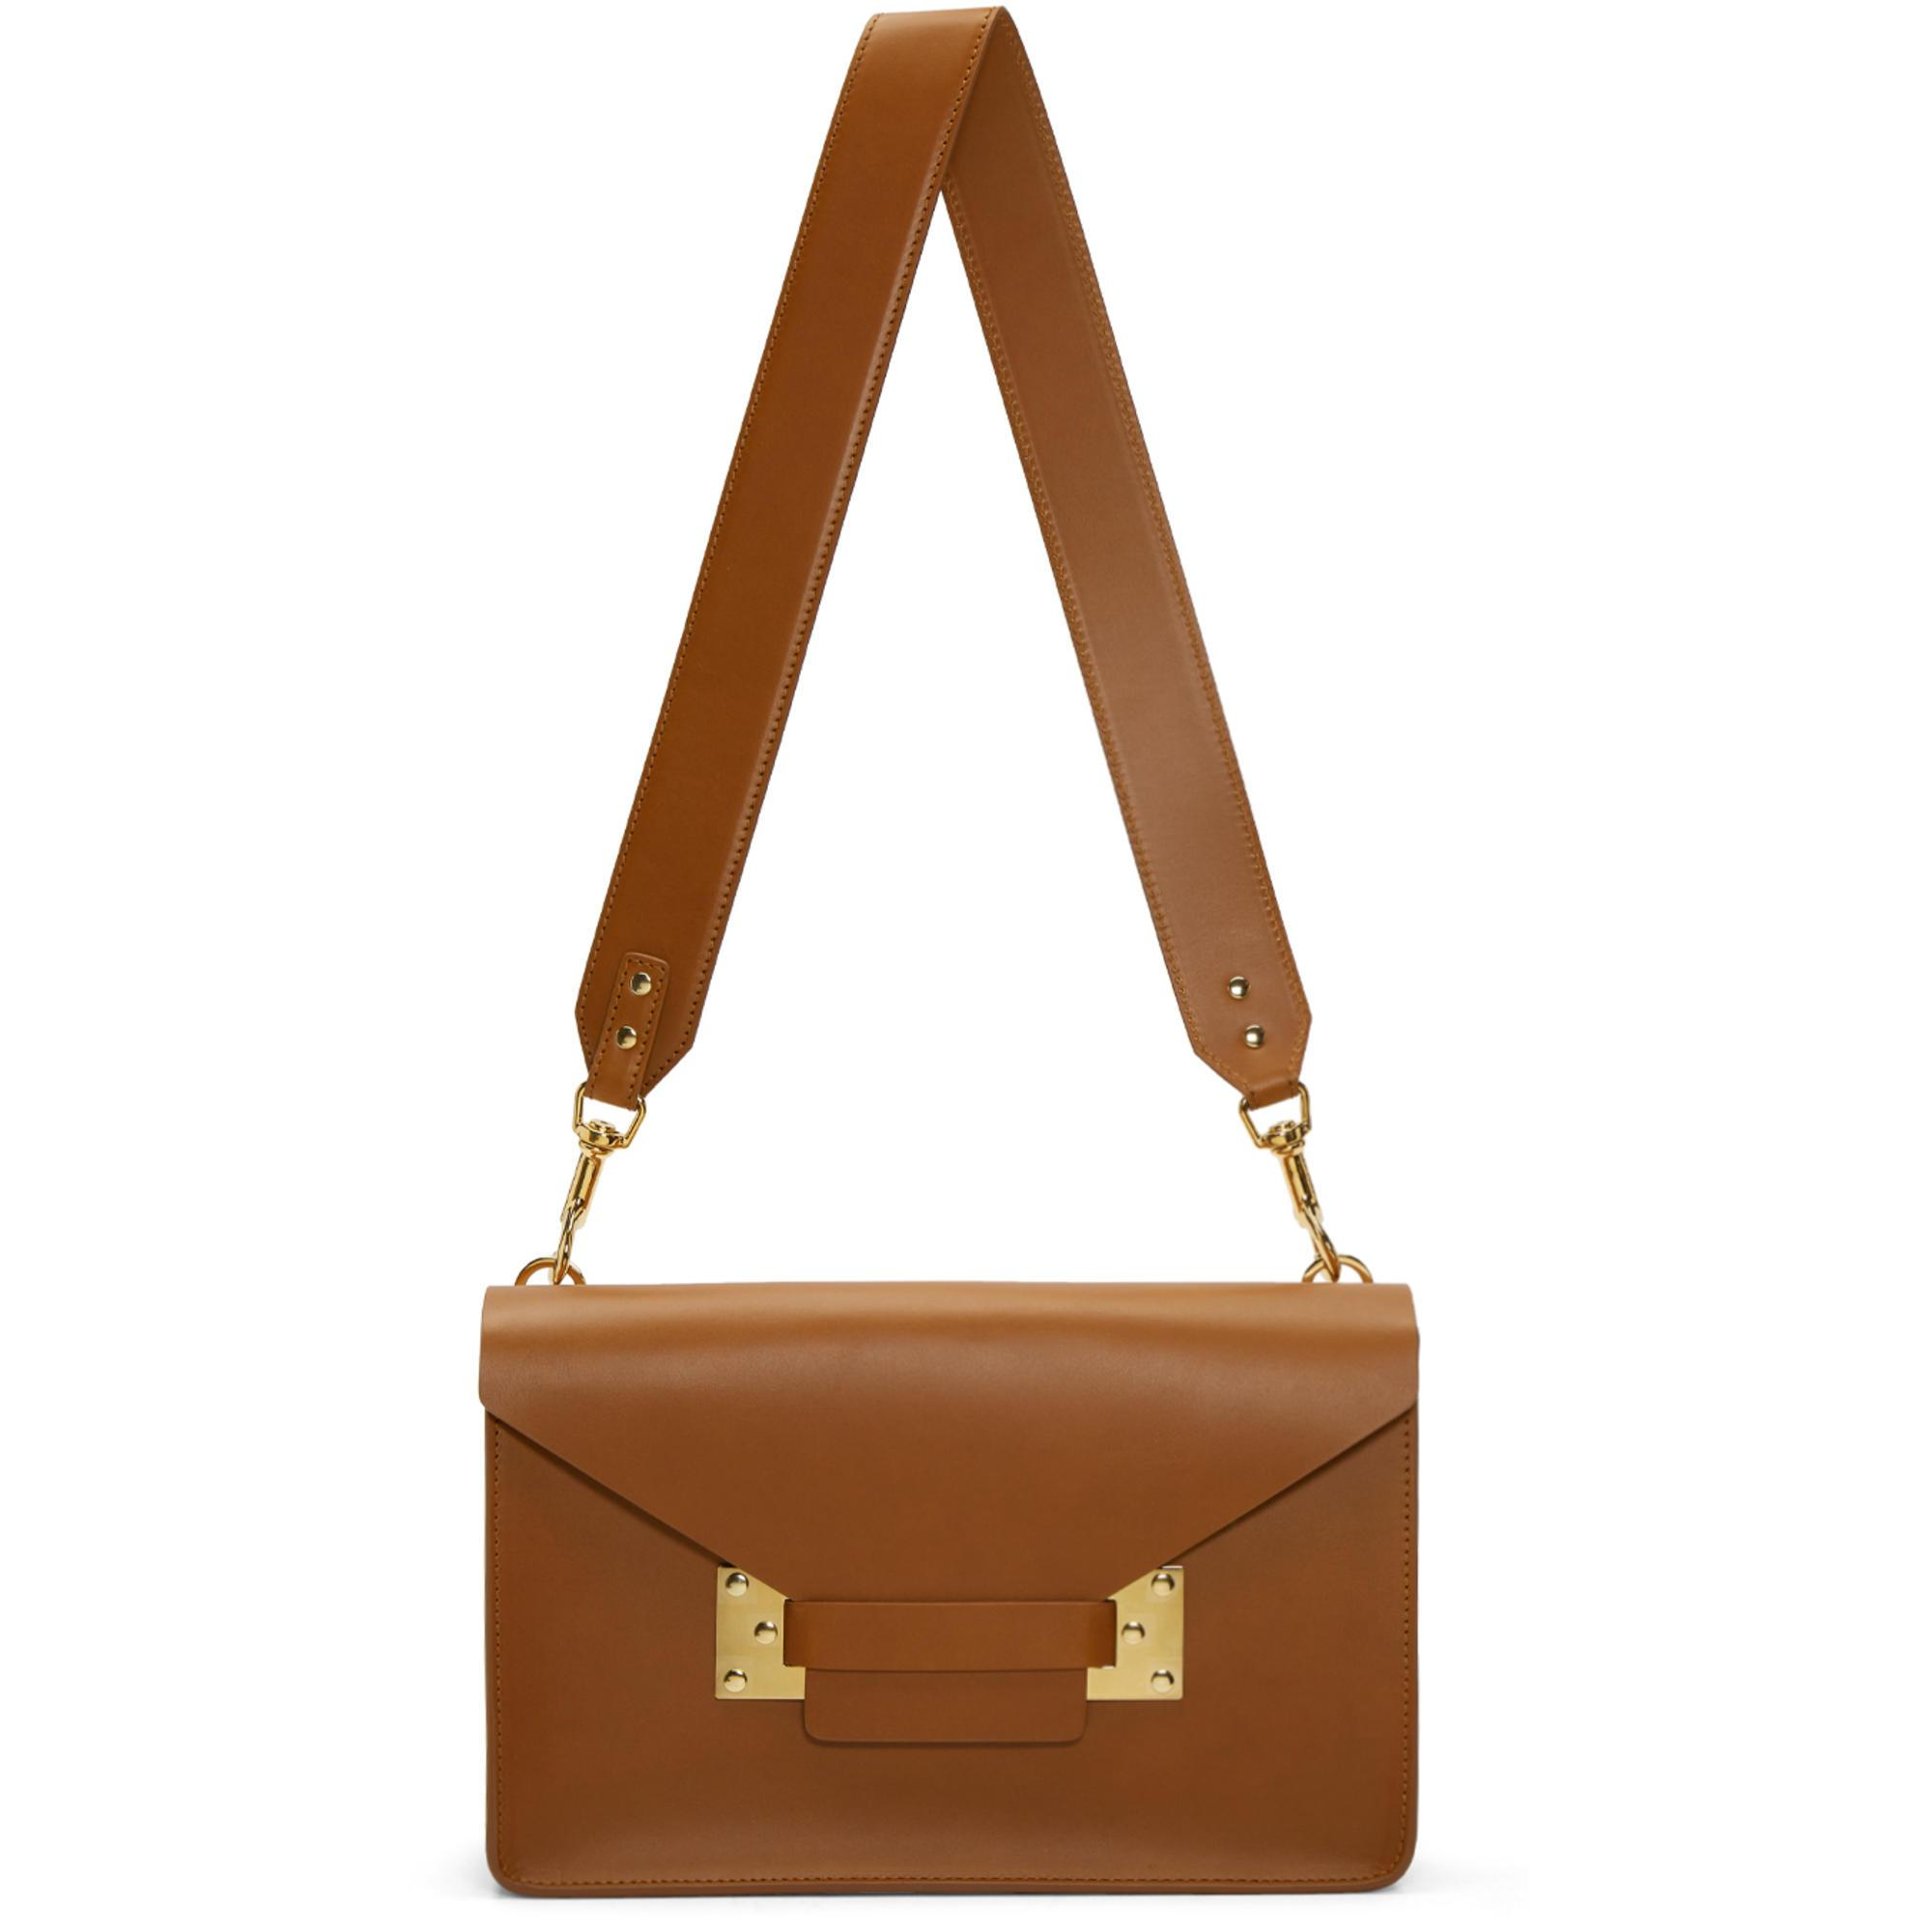 Sophie Hulme Tan Milner Bag in Brown - Lyst e0bc874005a82